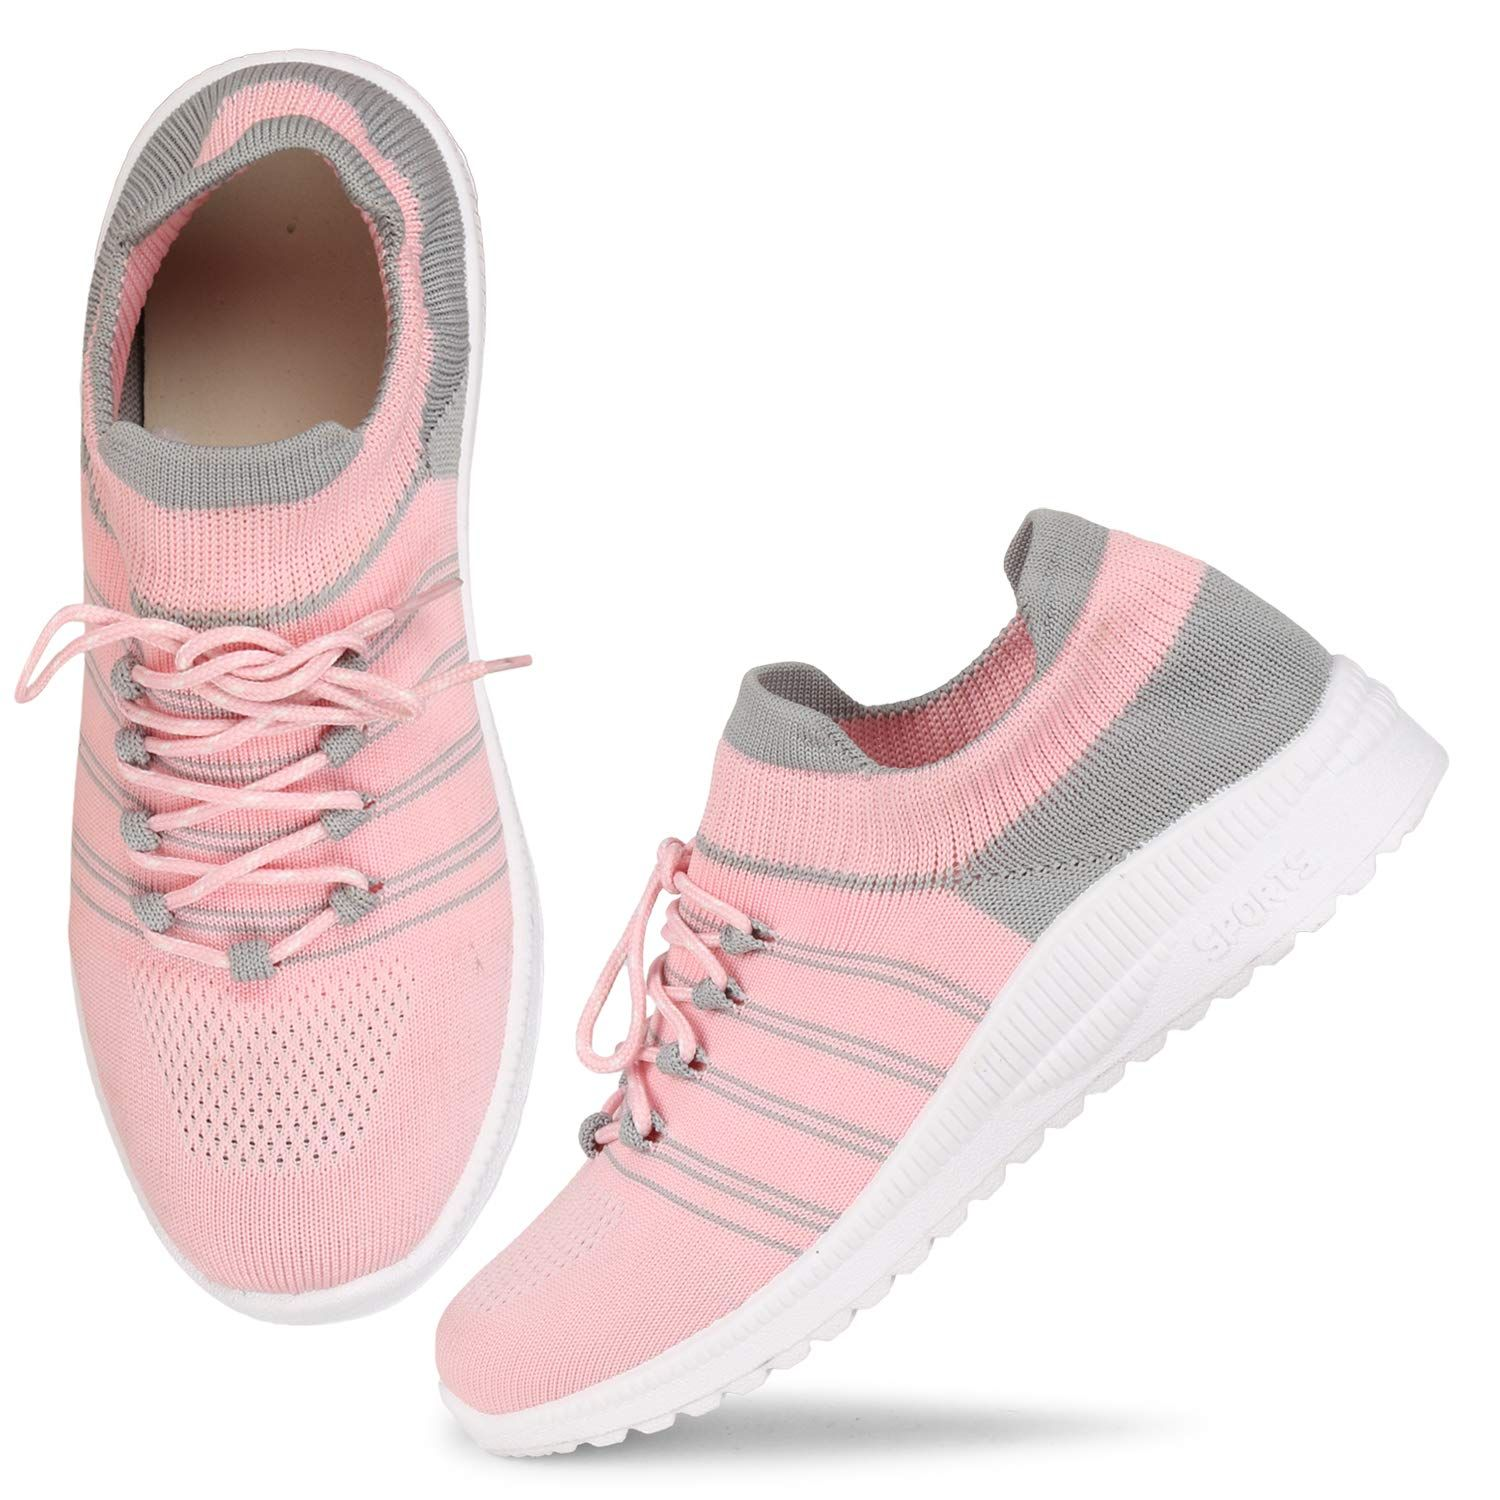 Women shoes, Gym shoes, Womens slippers